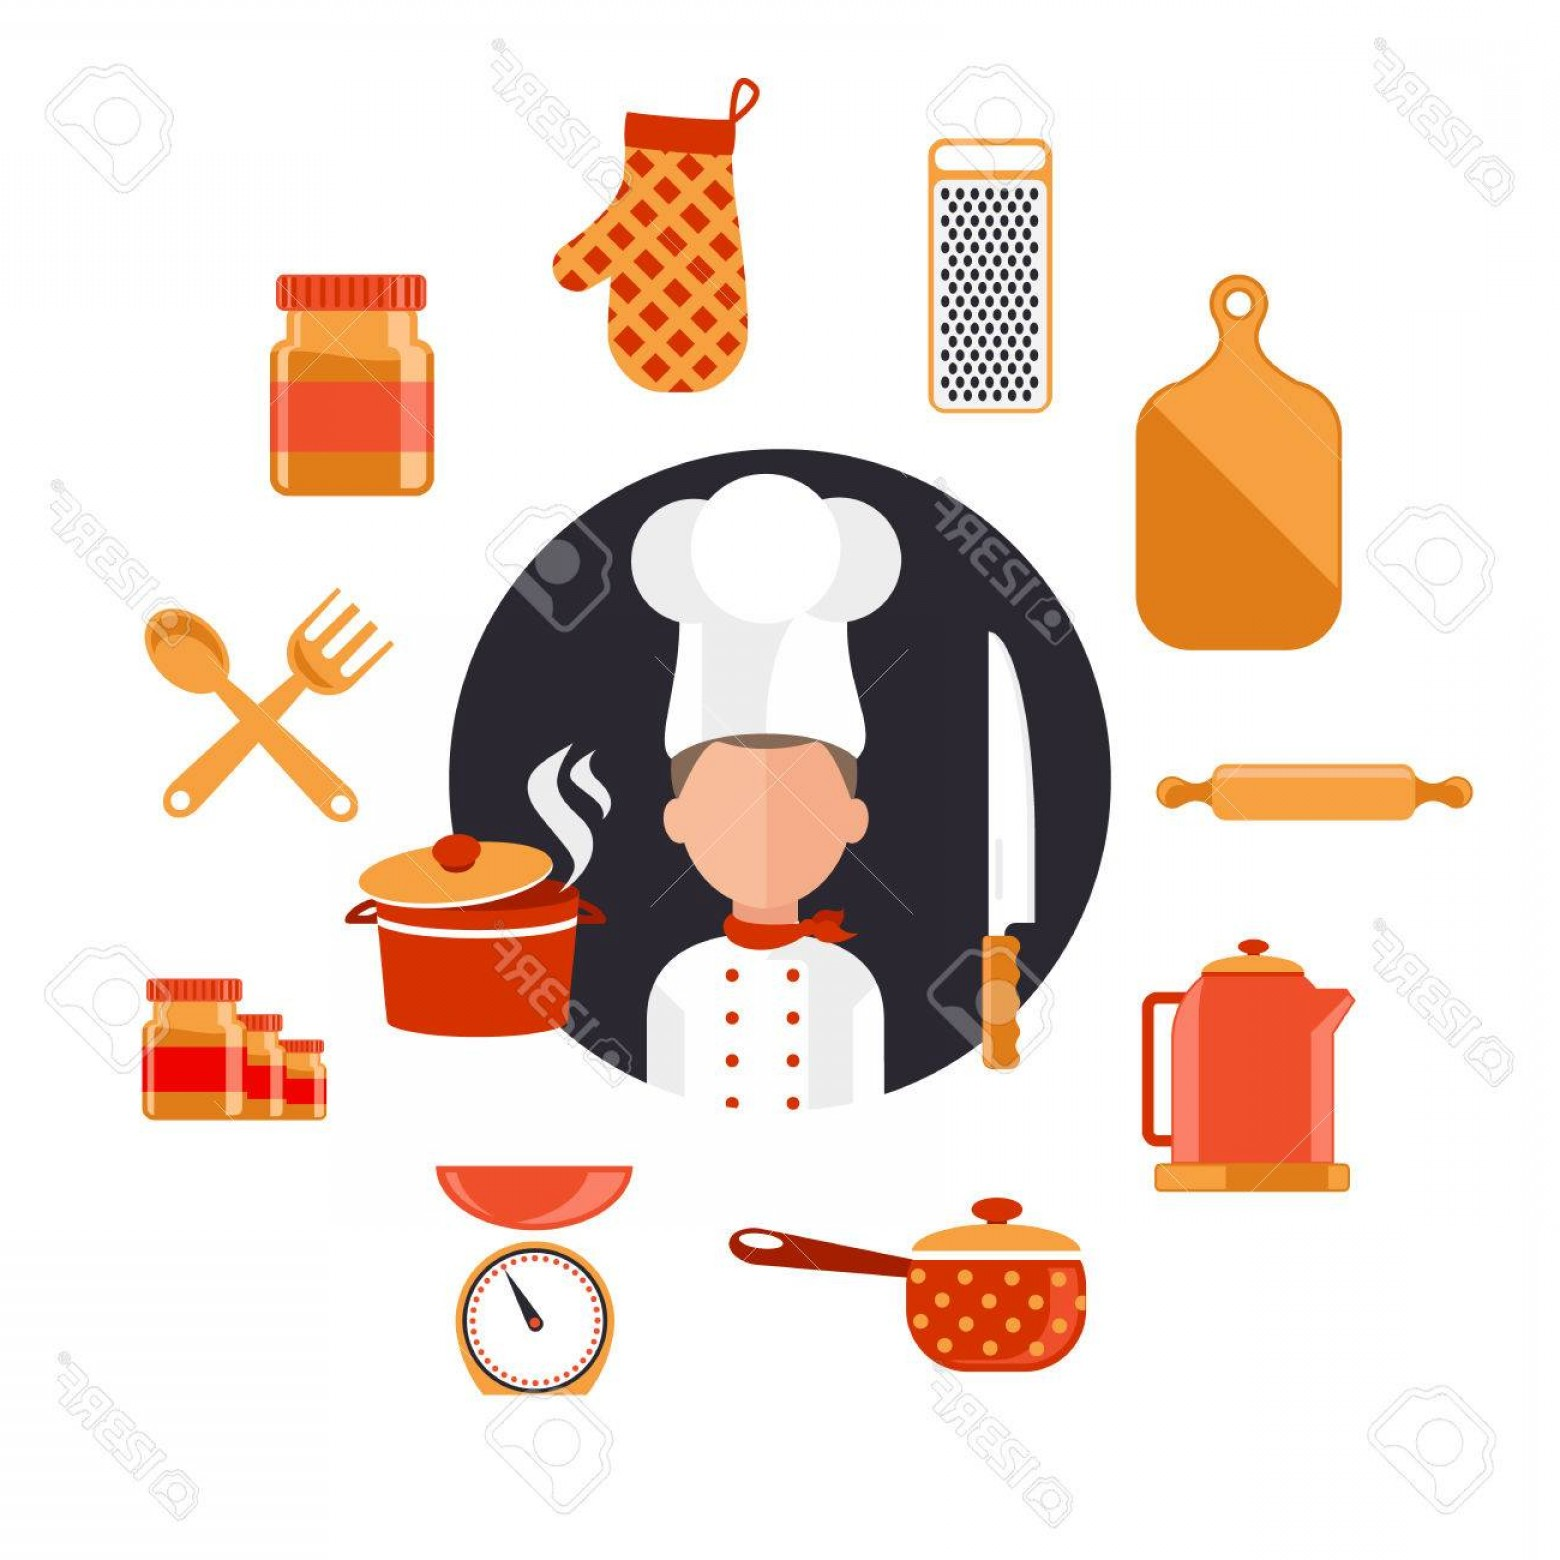 Vector Chef Utensils: Photostock Vector Flat Design Concept Icons Of Kitchen Utensils With A Chef Cooking Tools And Kitchenware Equipment Se